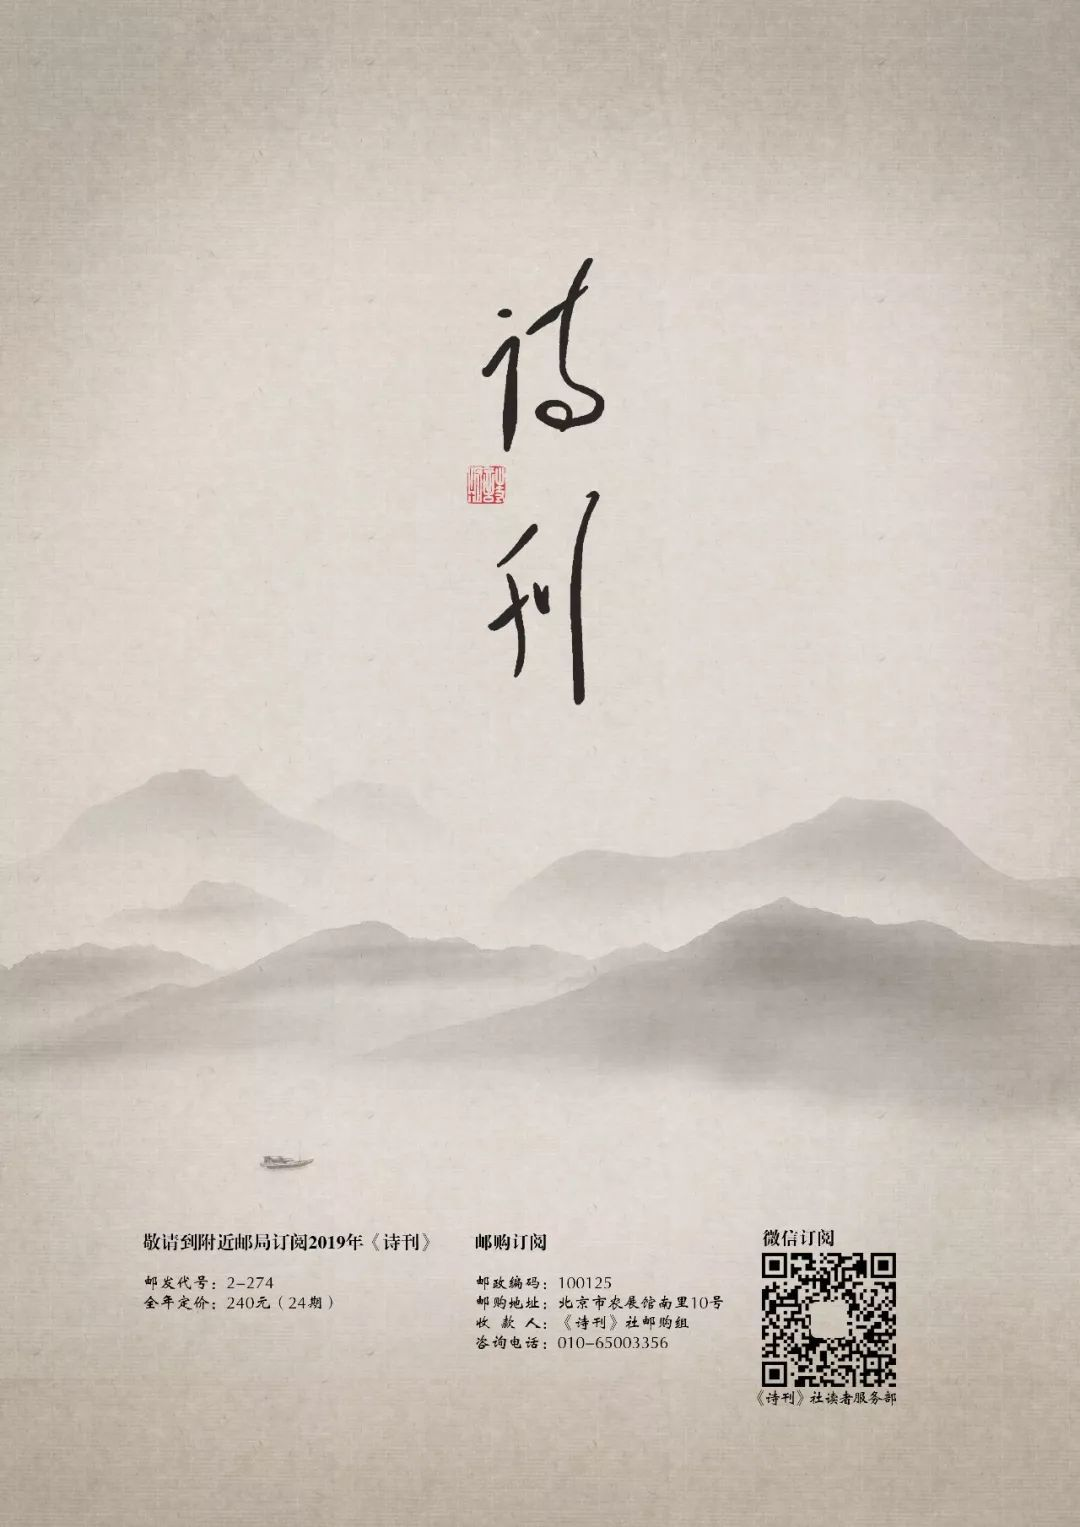 21st Century Chinese Poetry | Home